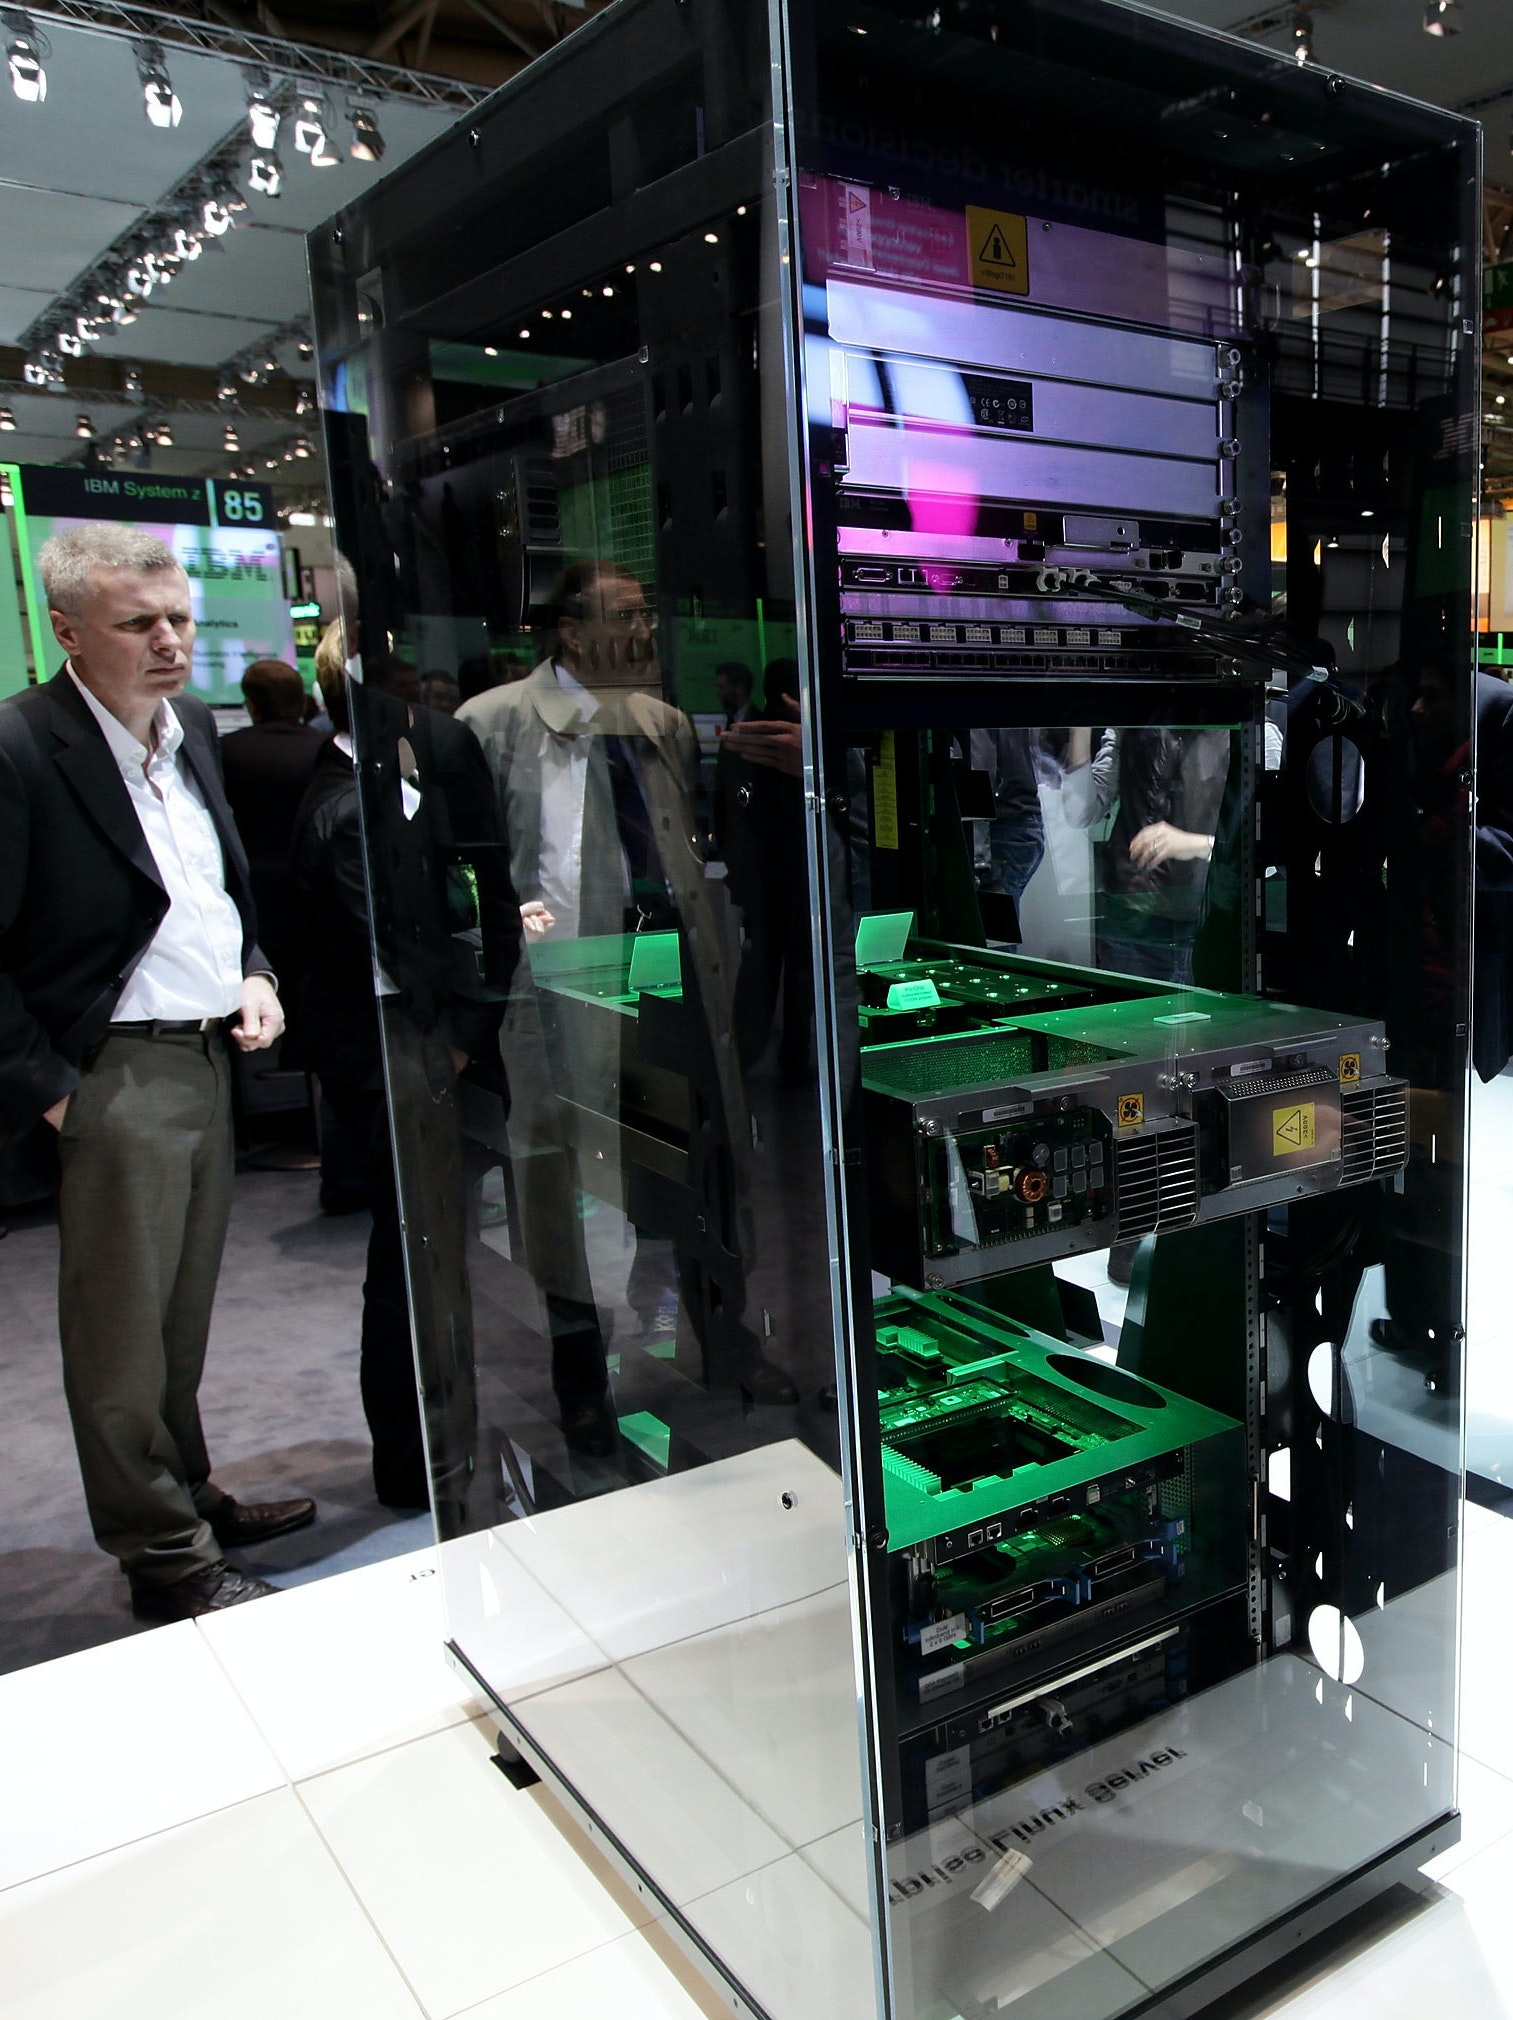 Visitors look at an Enterprise Linux Server at the IBM stand at the CeBIT Technology Fair on March 3, 2010 in Hannover, Germany.